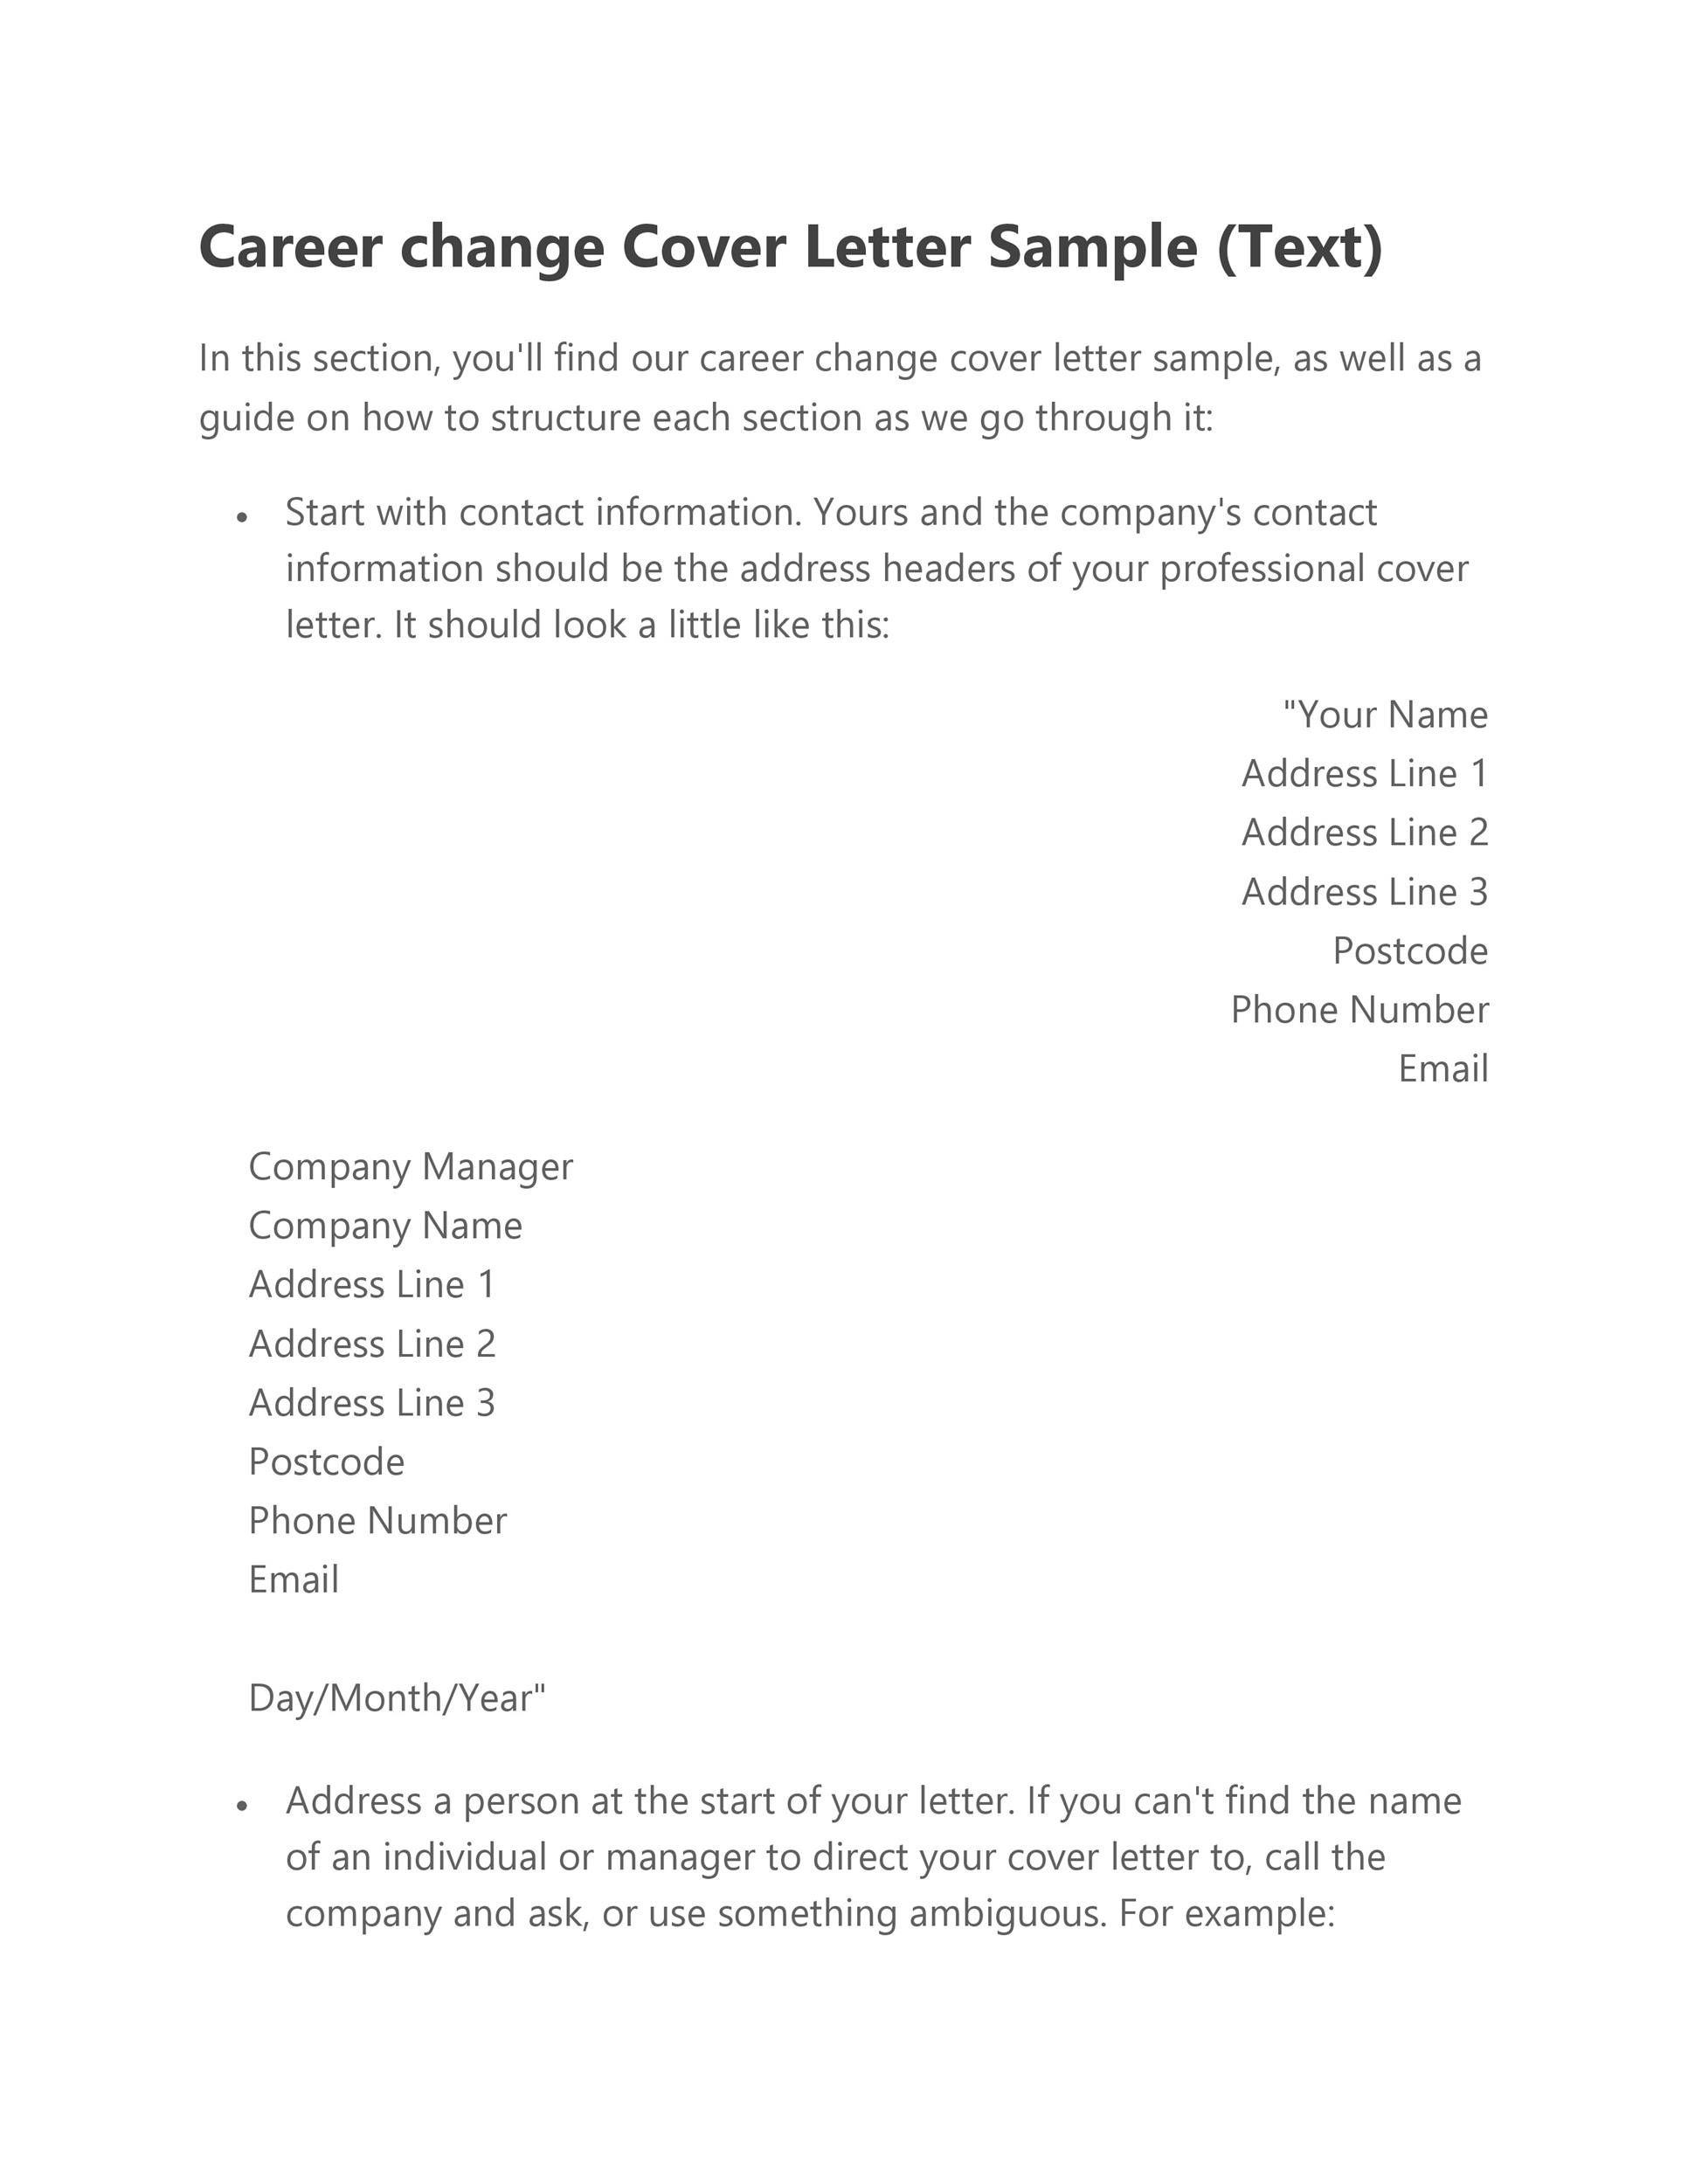 Free career change cover letter 16